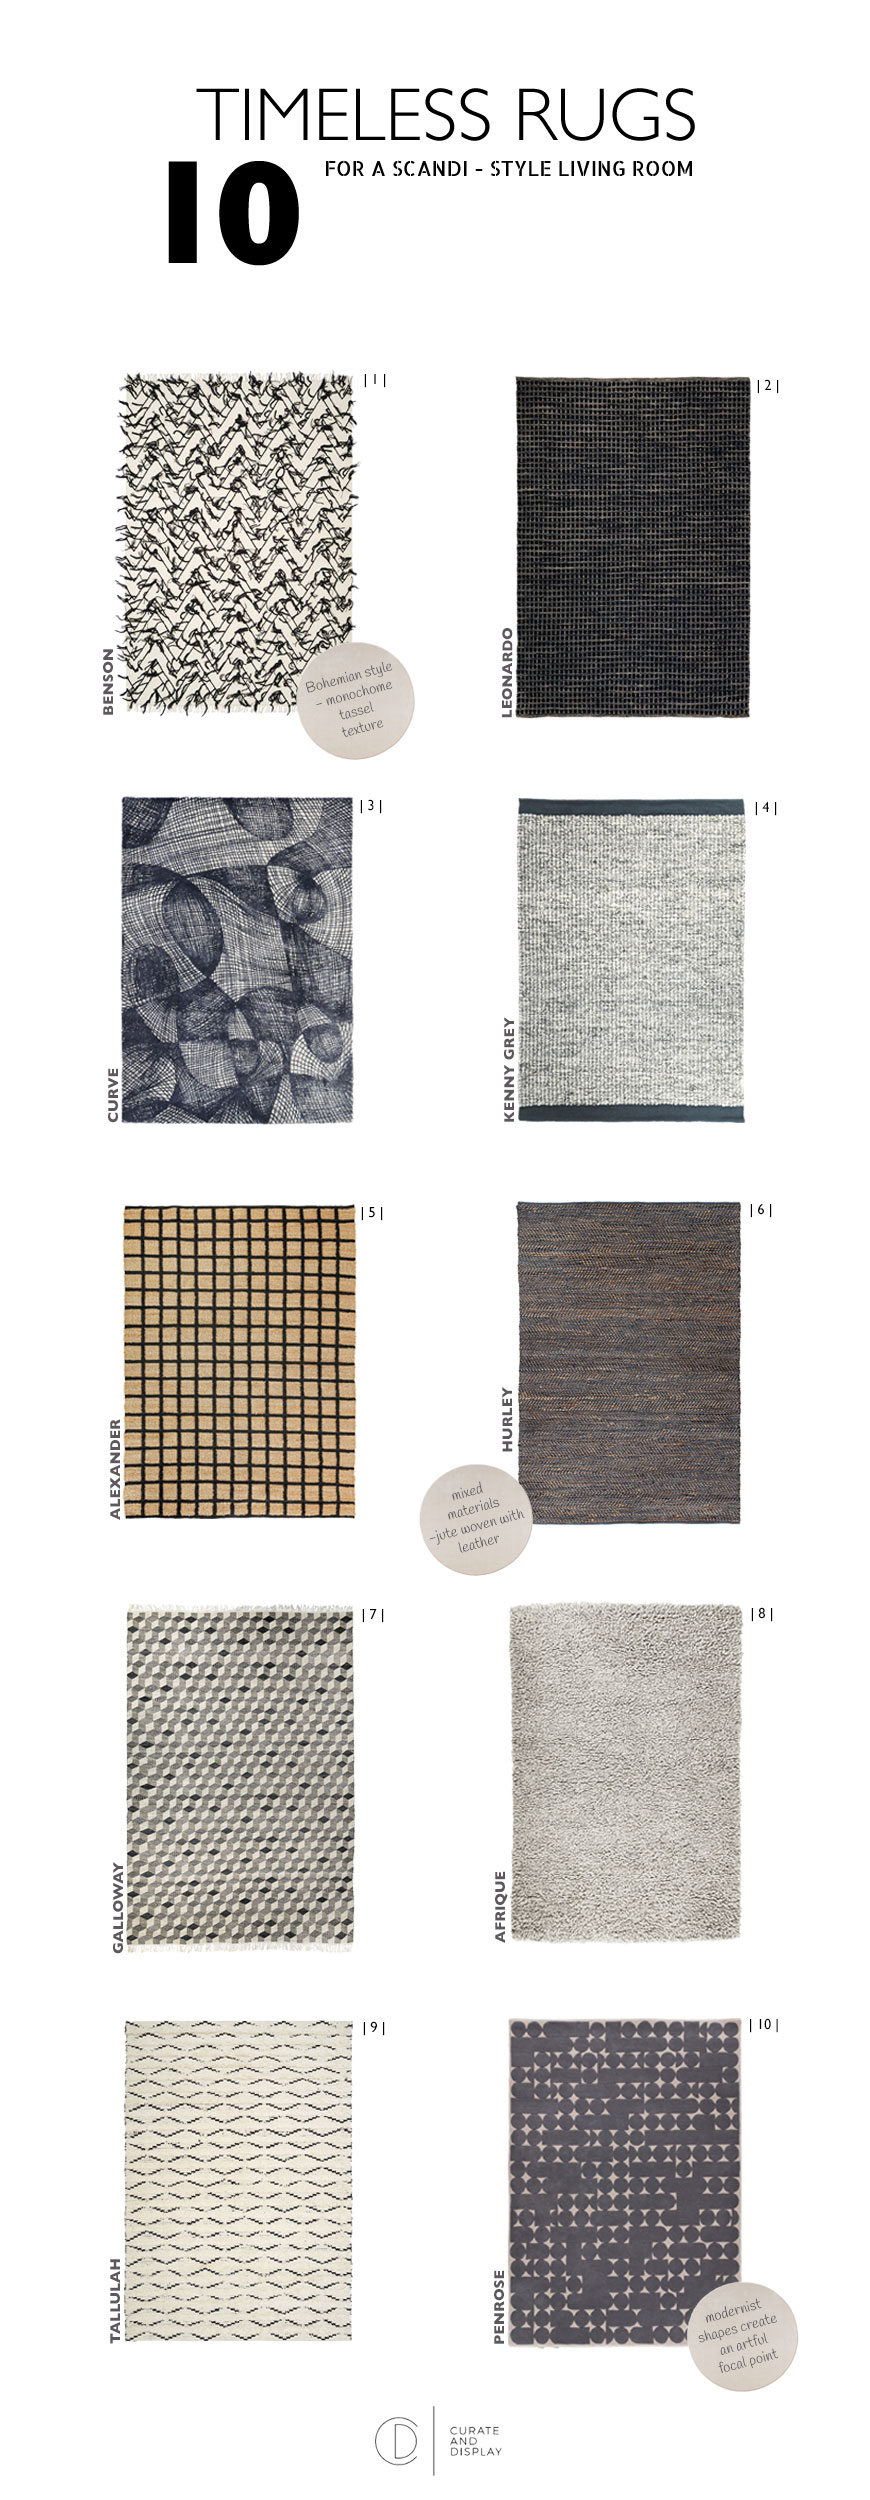 A shopping page for 10 timeless rugs for a Scandi-style living room.